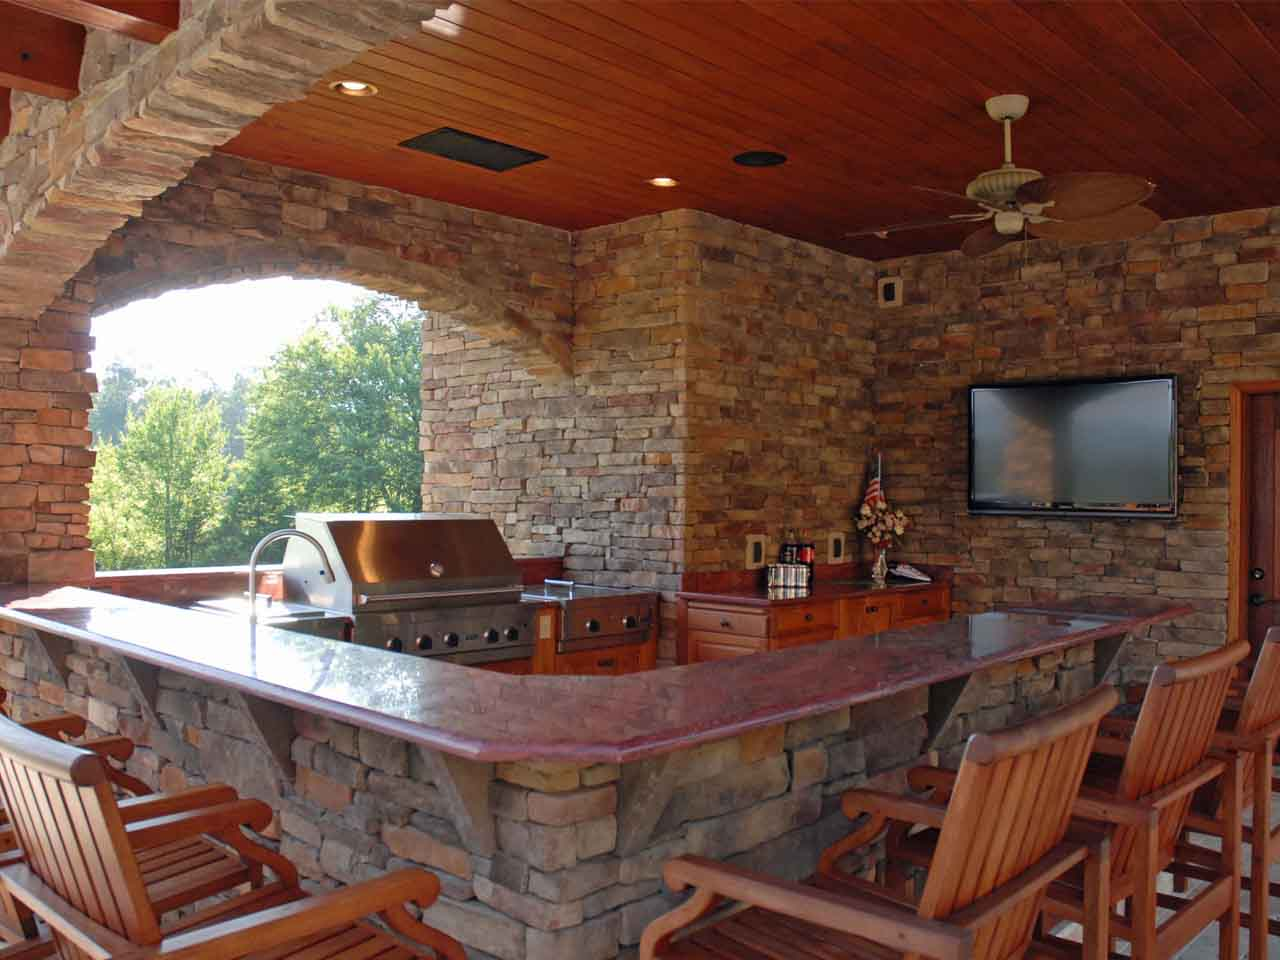 Rustic Outdoor Kitchen Beautiful Outdoor Kitchen Ideas Which Are Pure Inspiration